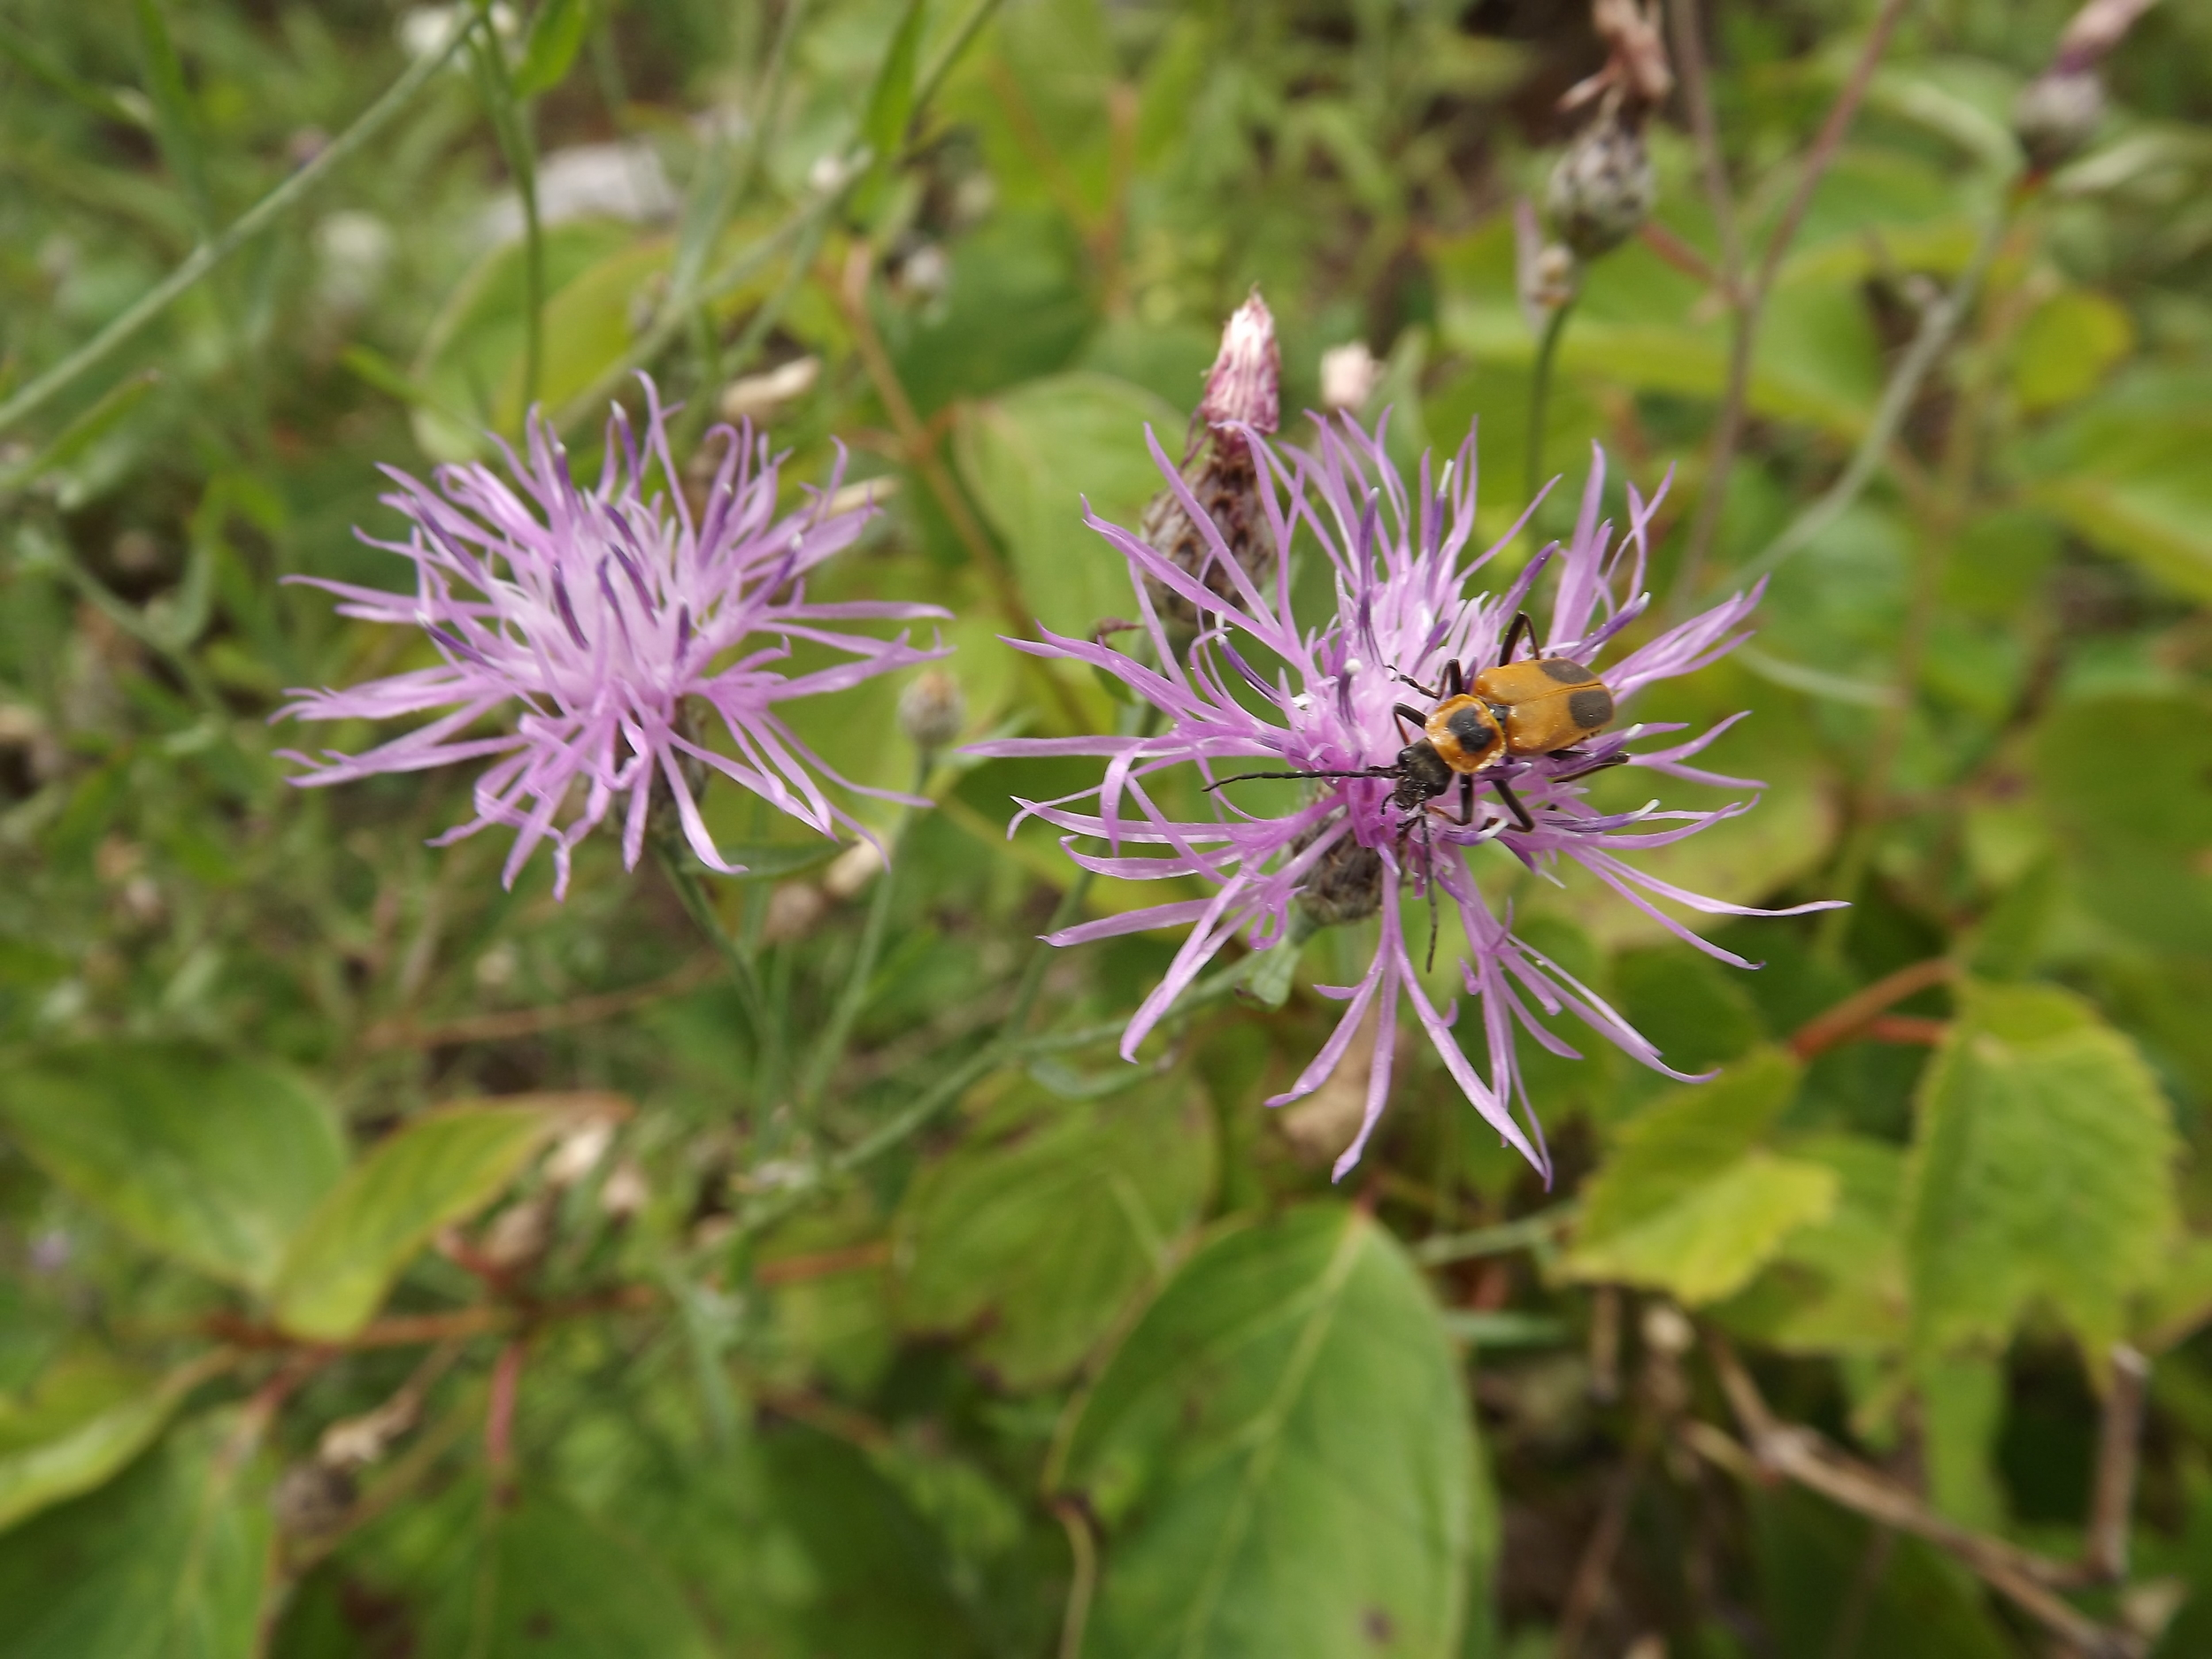 Canada Thistle ( Cirsium arvense ) - Canada Thistle is not native to our area, but can be found in great abundance some years. Even though the plant is scrawny and tall, its flowers are rather beautiful.